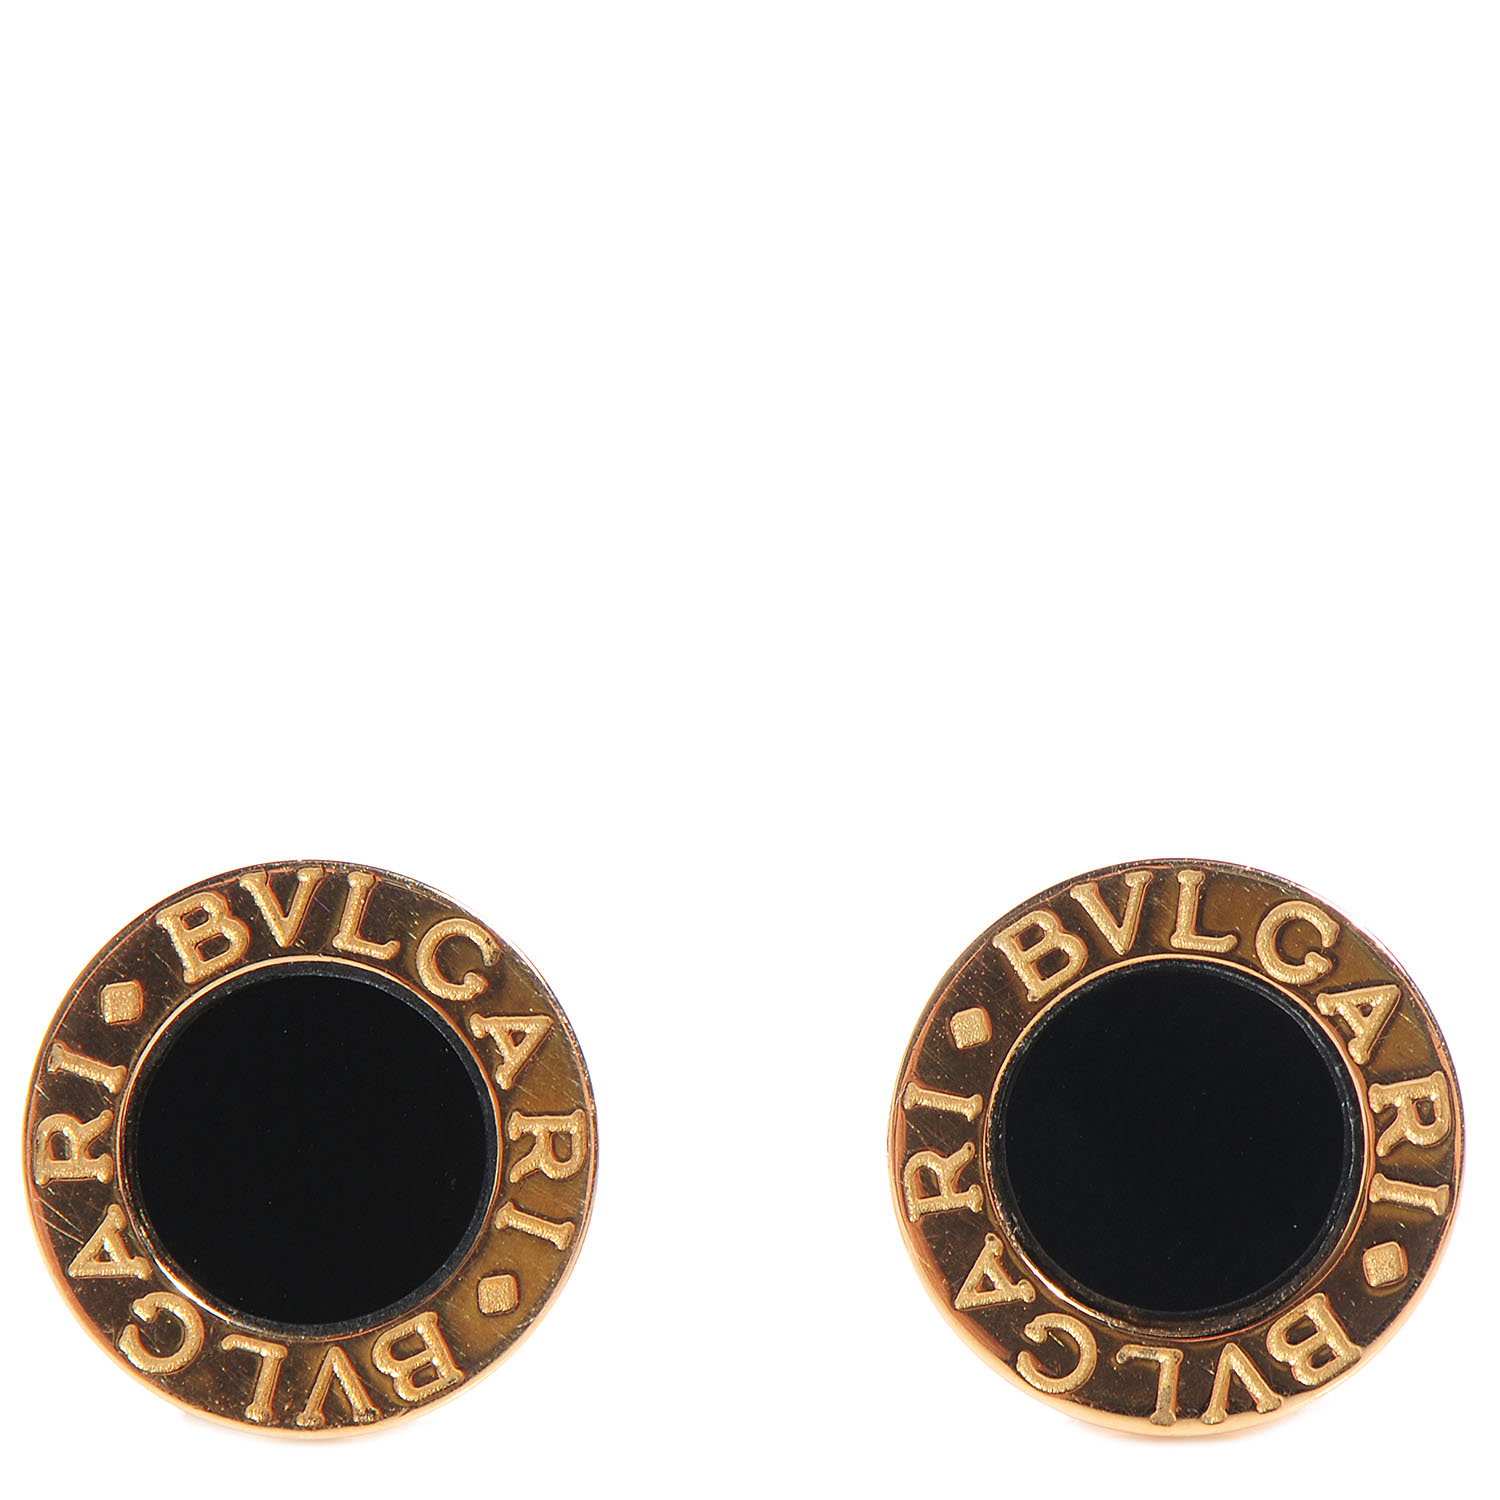 Bulgari Bvlgari 18k Yellow Gold Black Onyx Stud Earrings 88019